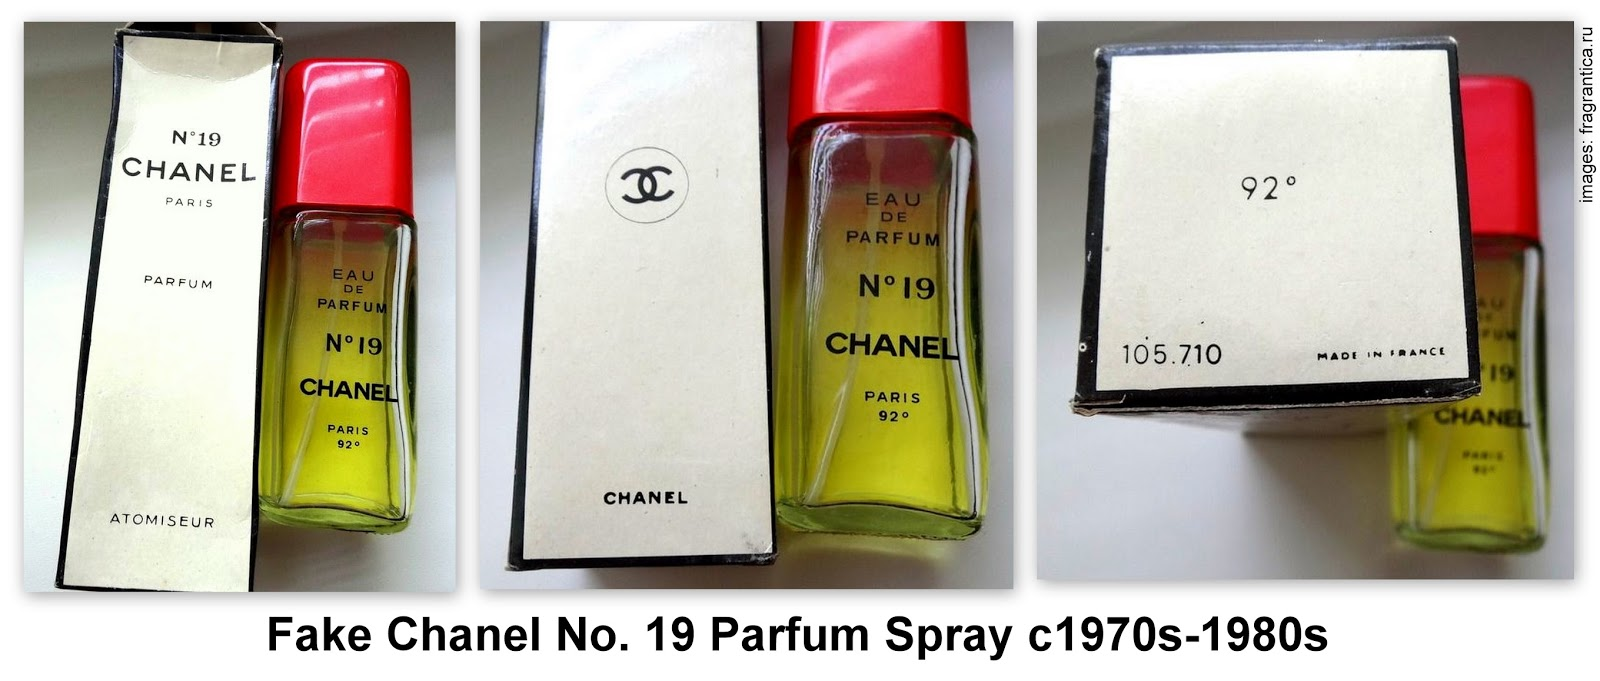 Chanel Perfume Bottles Preventing Fakes Coco Edp 100ml Most Sellers Have No Idea Their Is A Counterfeit And I Would Rather Not Use Id Or Name To Prevent Embarrassment Blacklisting Them